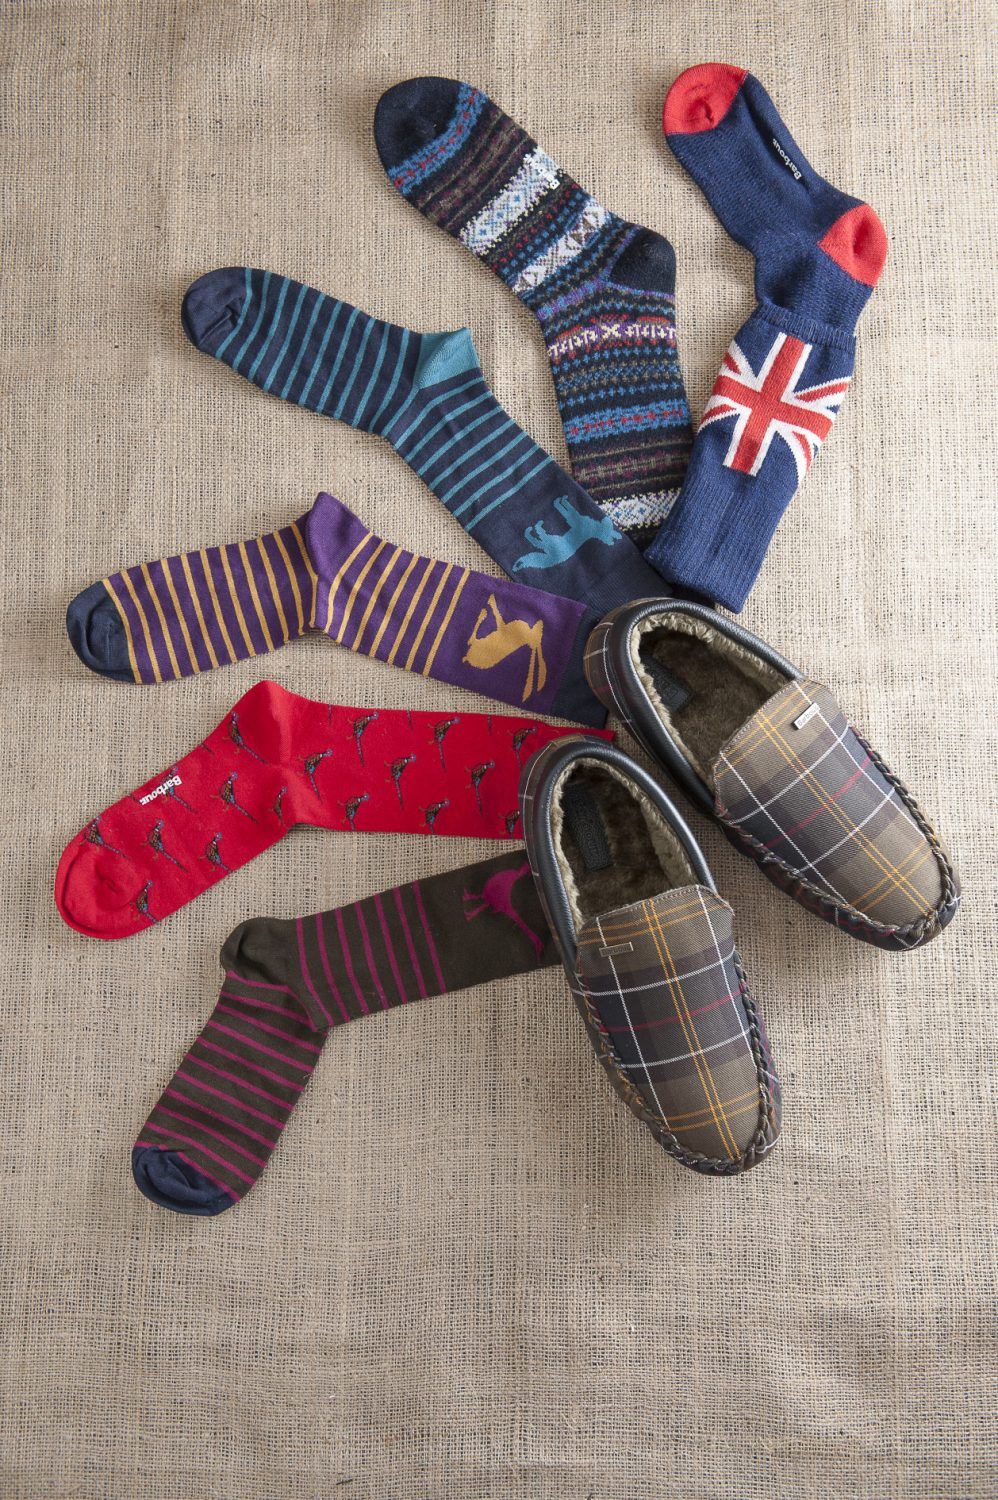 Socks: Joules striped socks with pheasant, hare and fox, £19.95 for all three pairs, Charity Farm Countrystore, Cranbrook 01580 713189 www.charityfarmcountrystore.co.uk; Barbour red pheasant socks, £9.95, Barbour fairisle socks, £12.95, Barbour Union Jack socks, £12.95, Barbour slippers, £54.95, The Golden Fleece, Rye 01797 224271 www.thegoldenfleece.co.uk